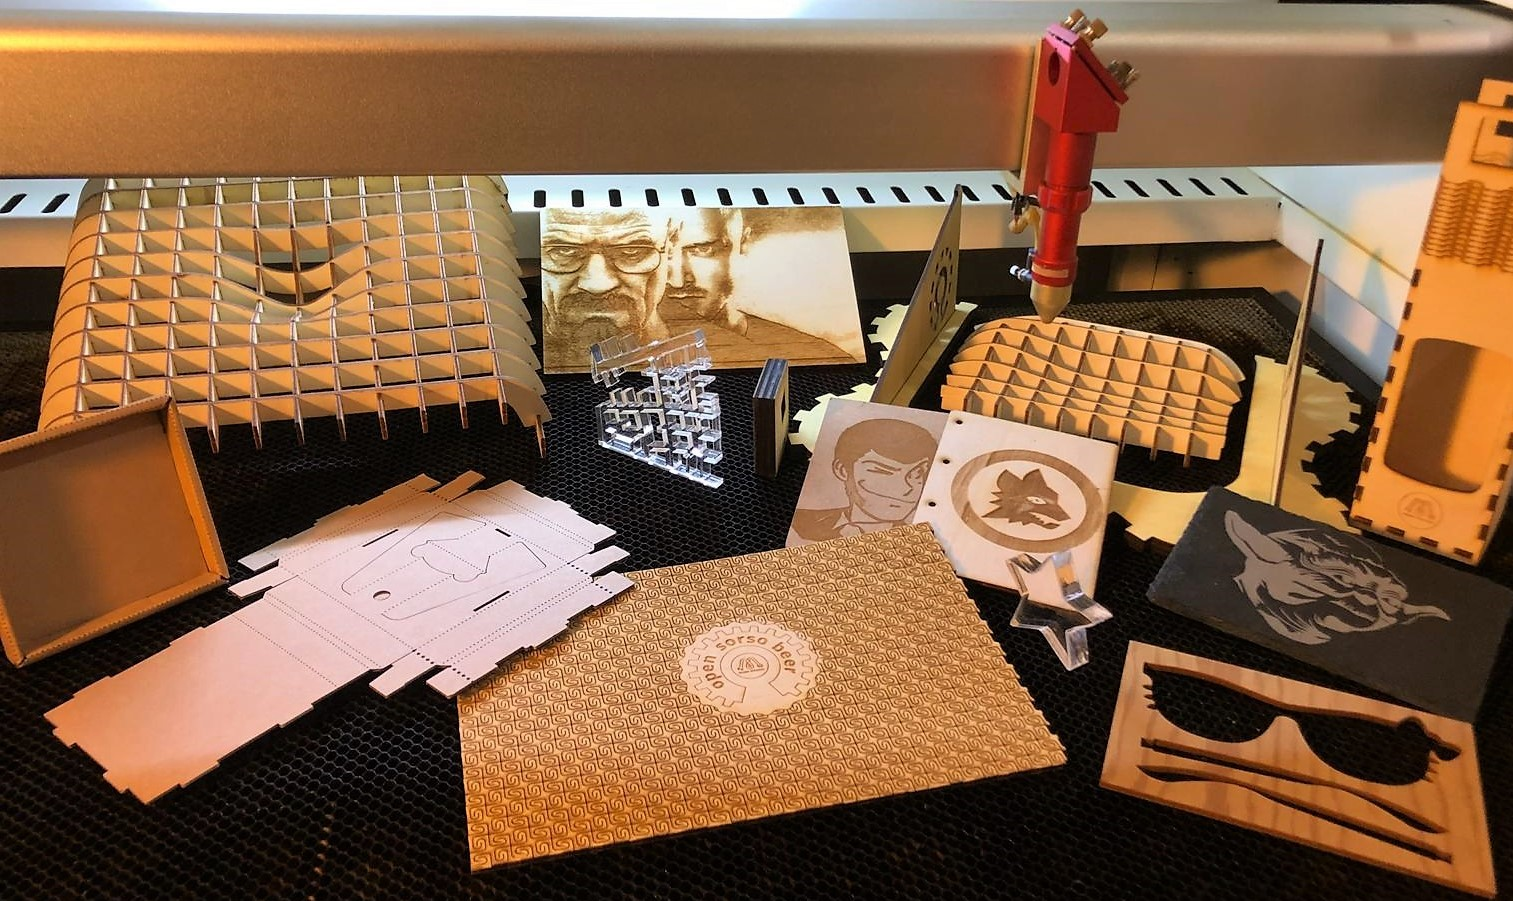 Laser_cutter_workshop_talgio_laser_corso